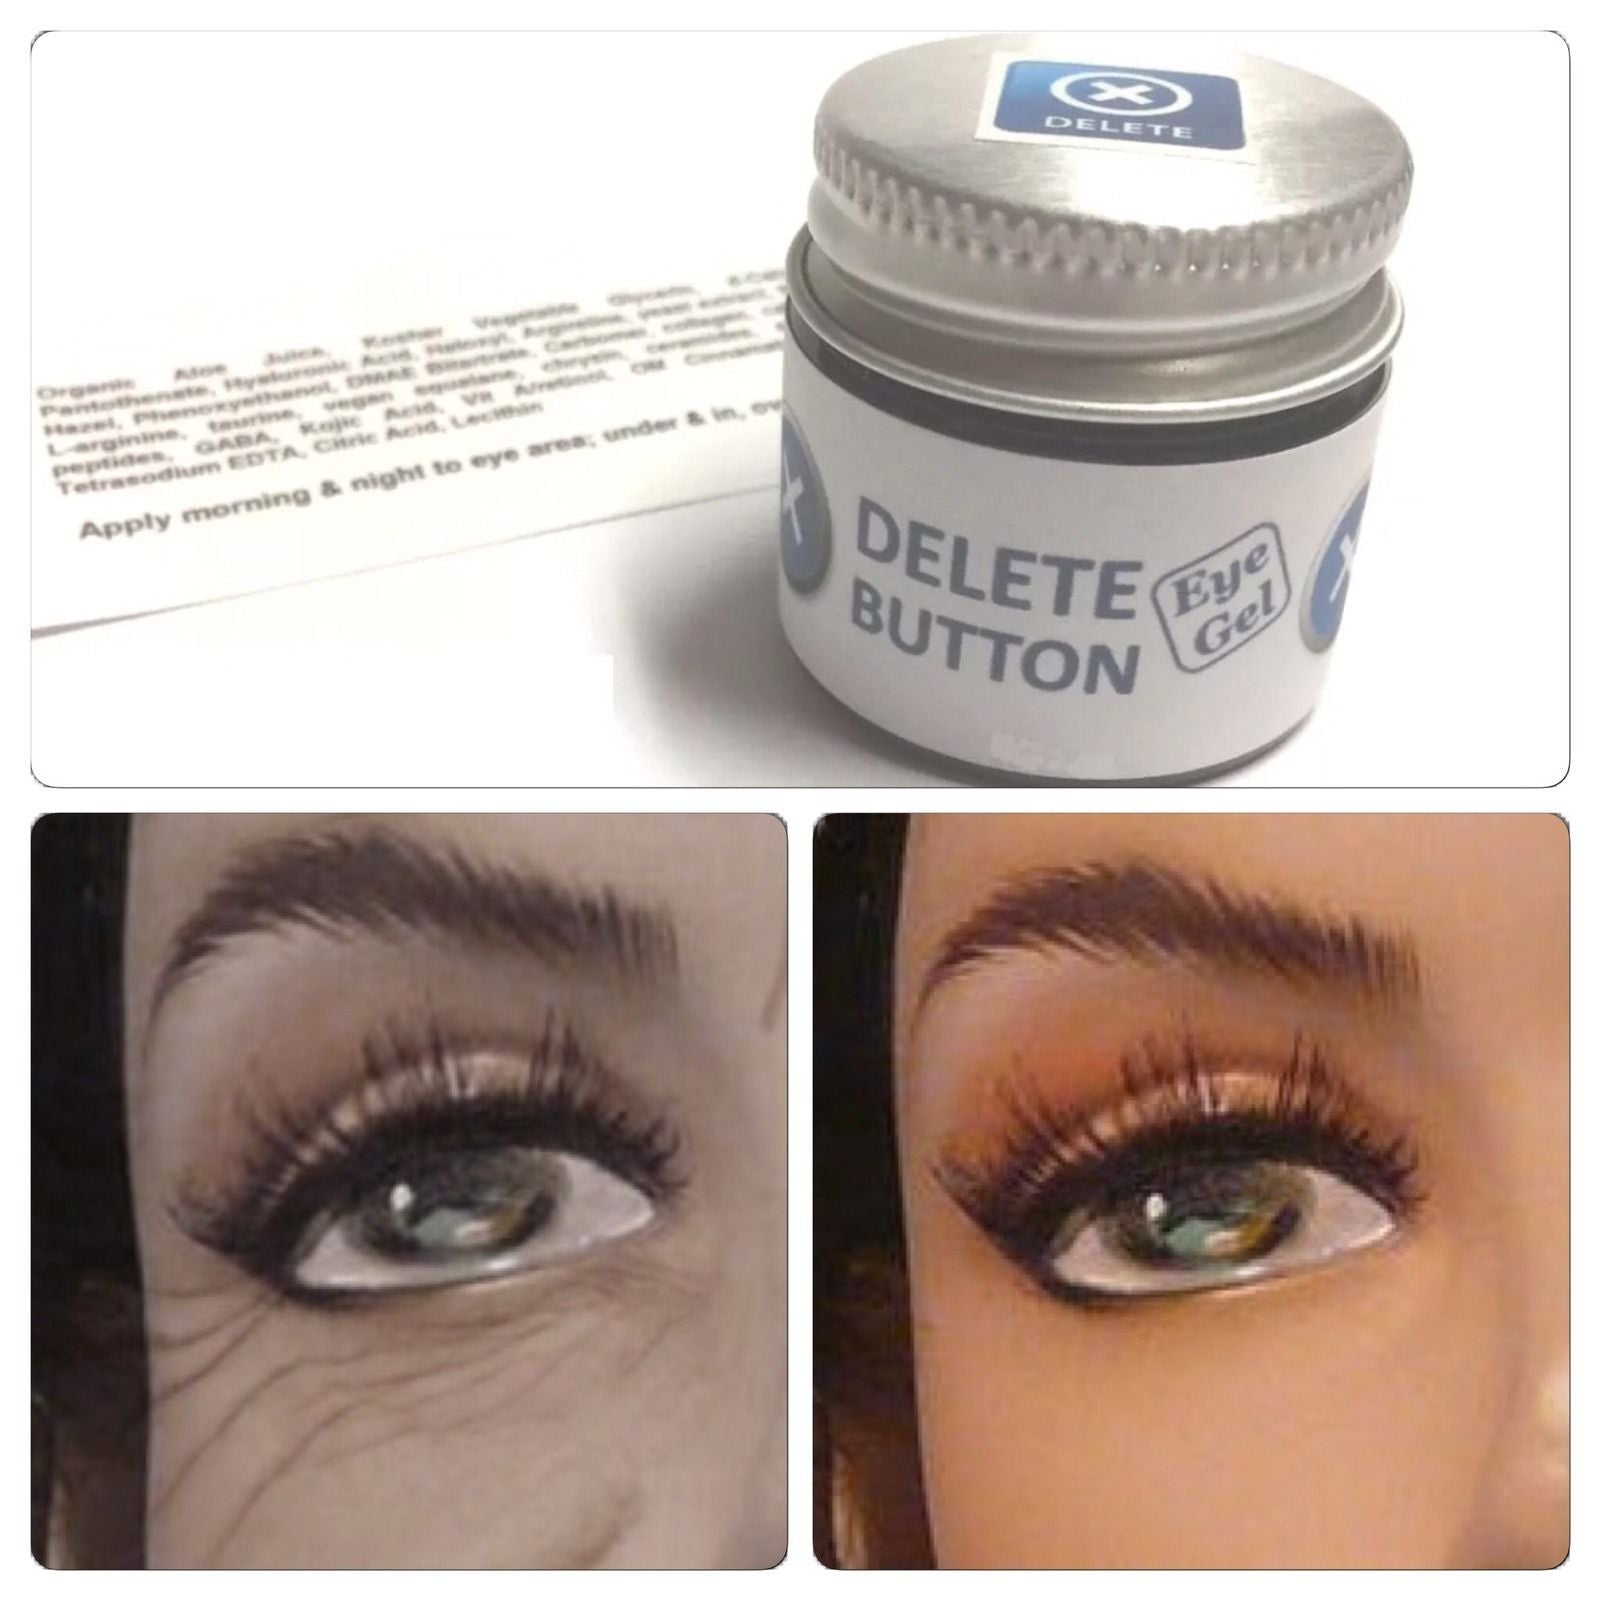 Delete Button Eye Gel DMAE Haloxyl Caffeine Puffy Under Eyes Dark Circles 1 oz/30 ml